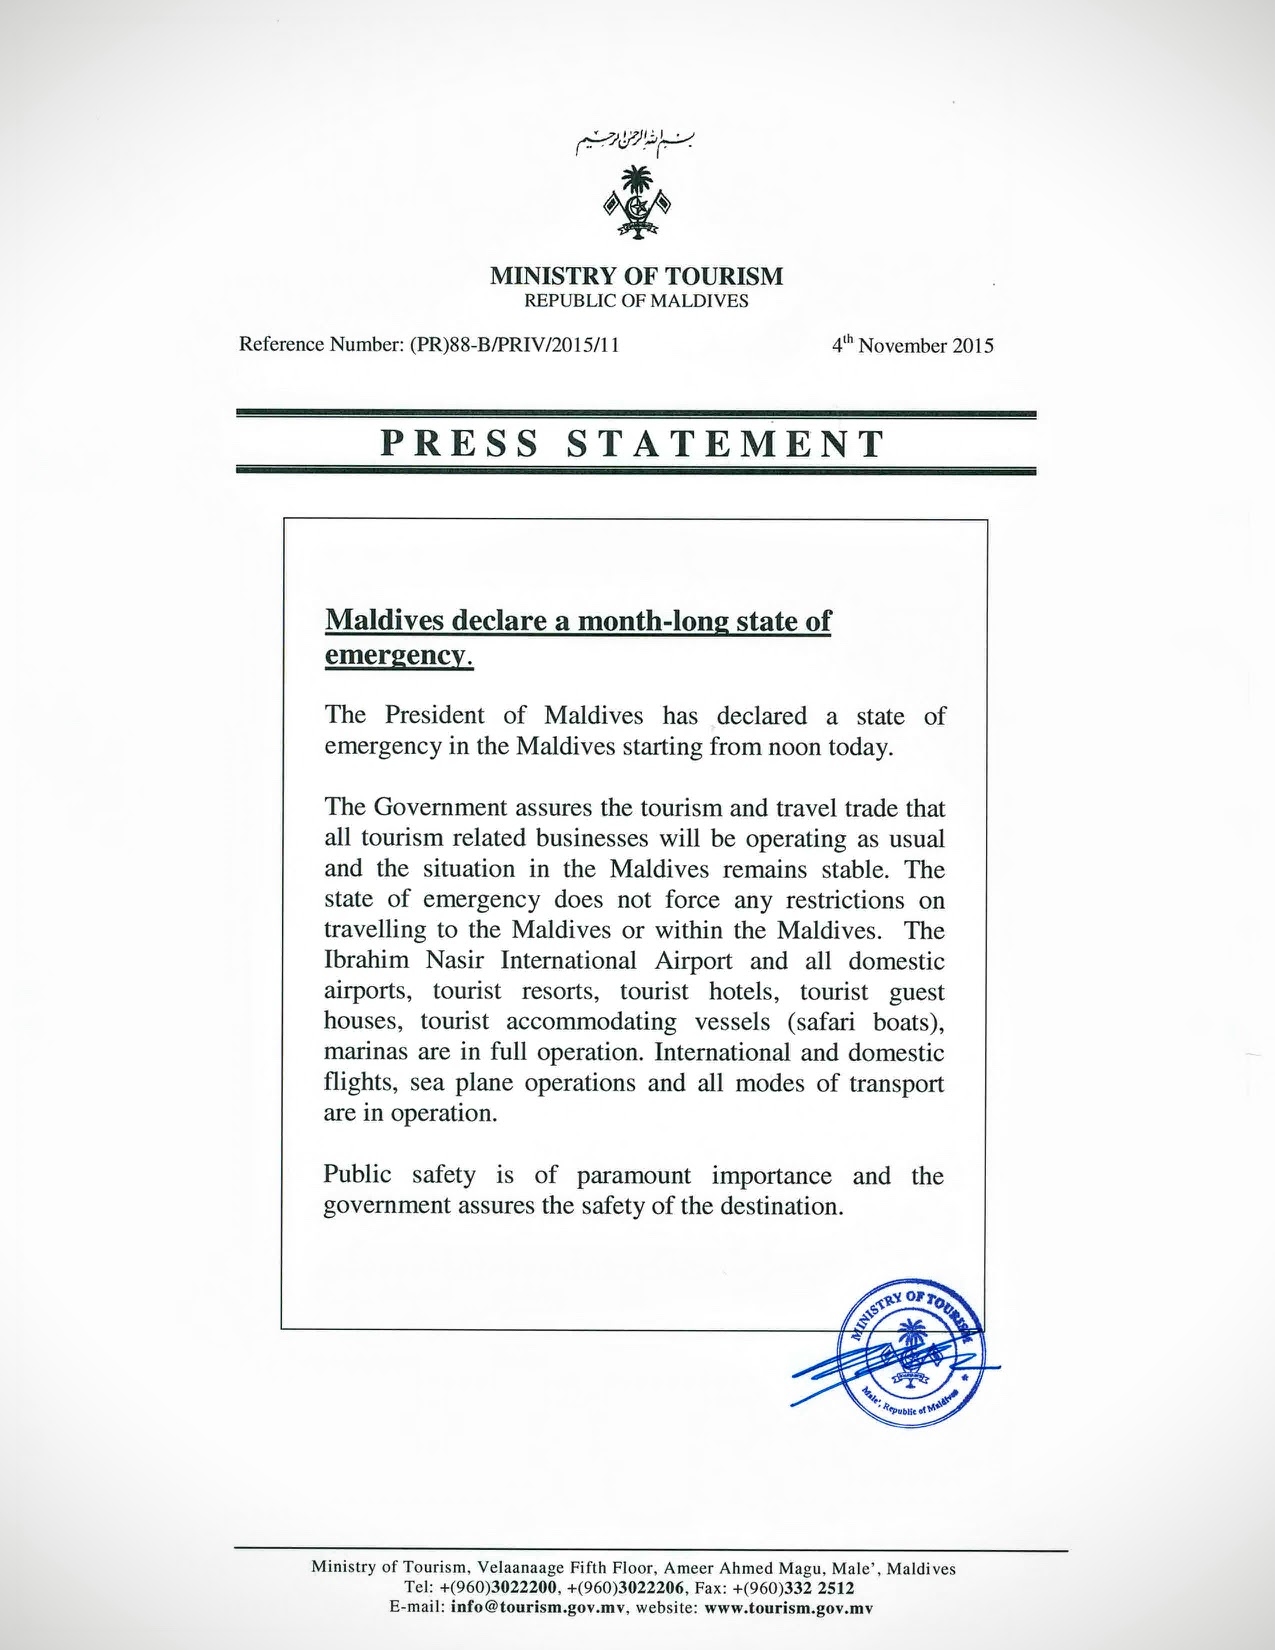 Press Statement from Maldives Ministry of Tourism